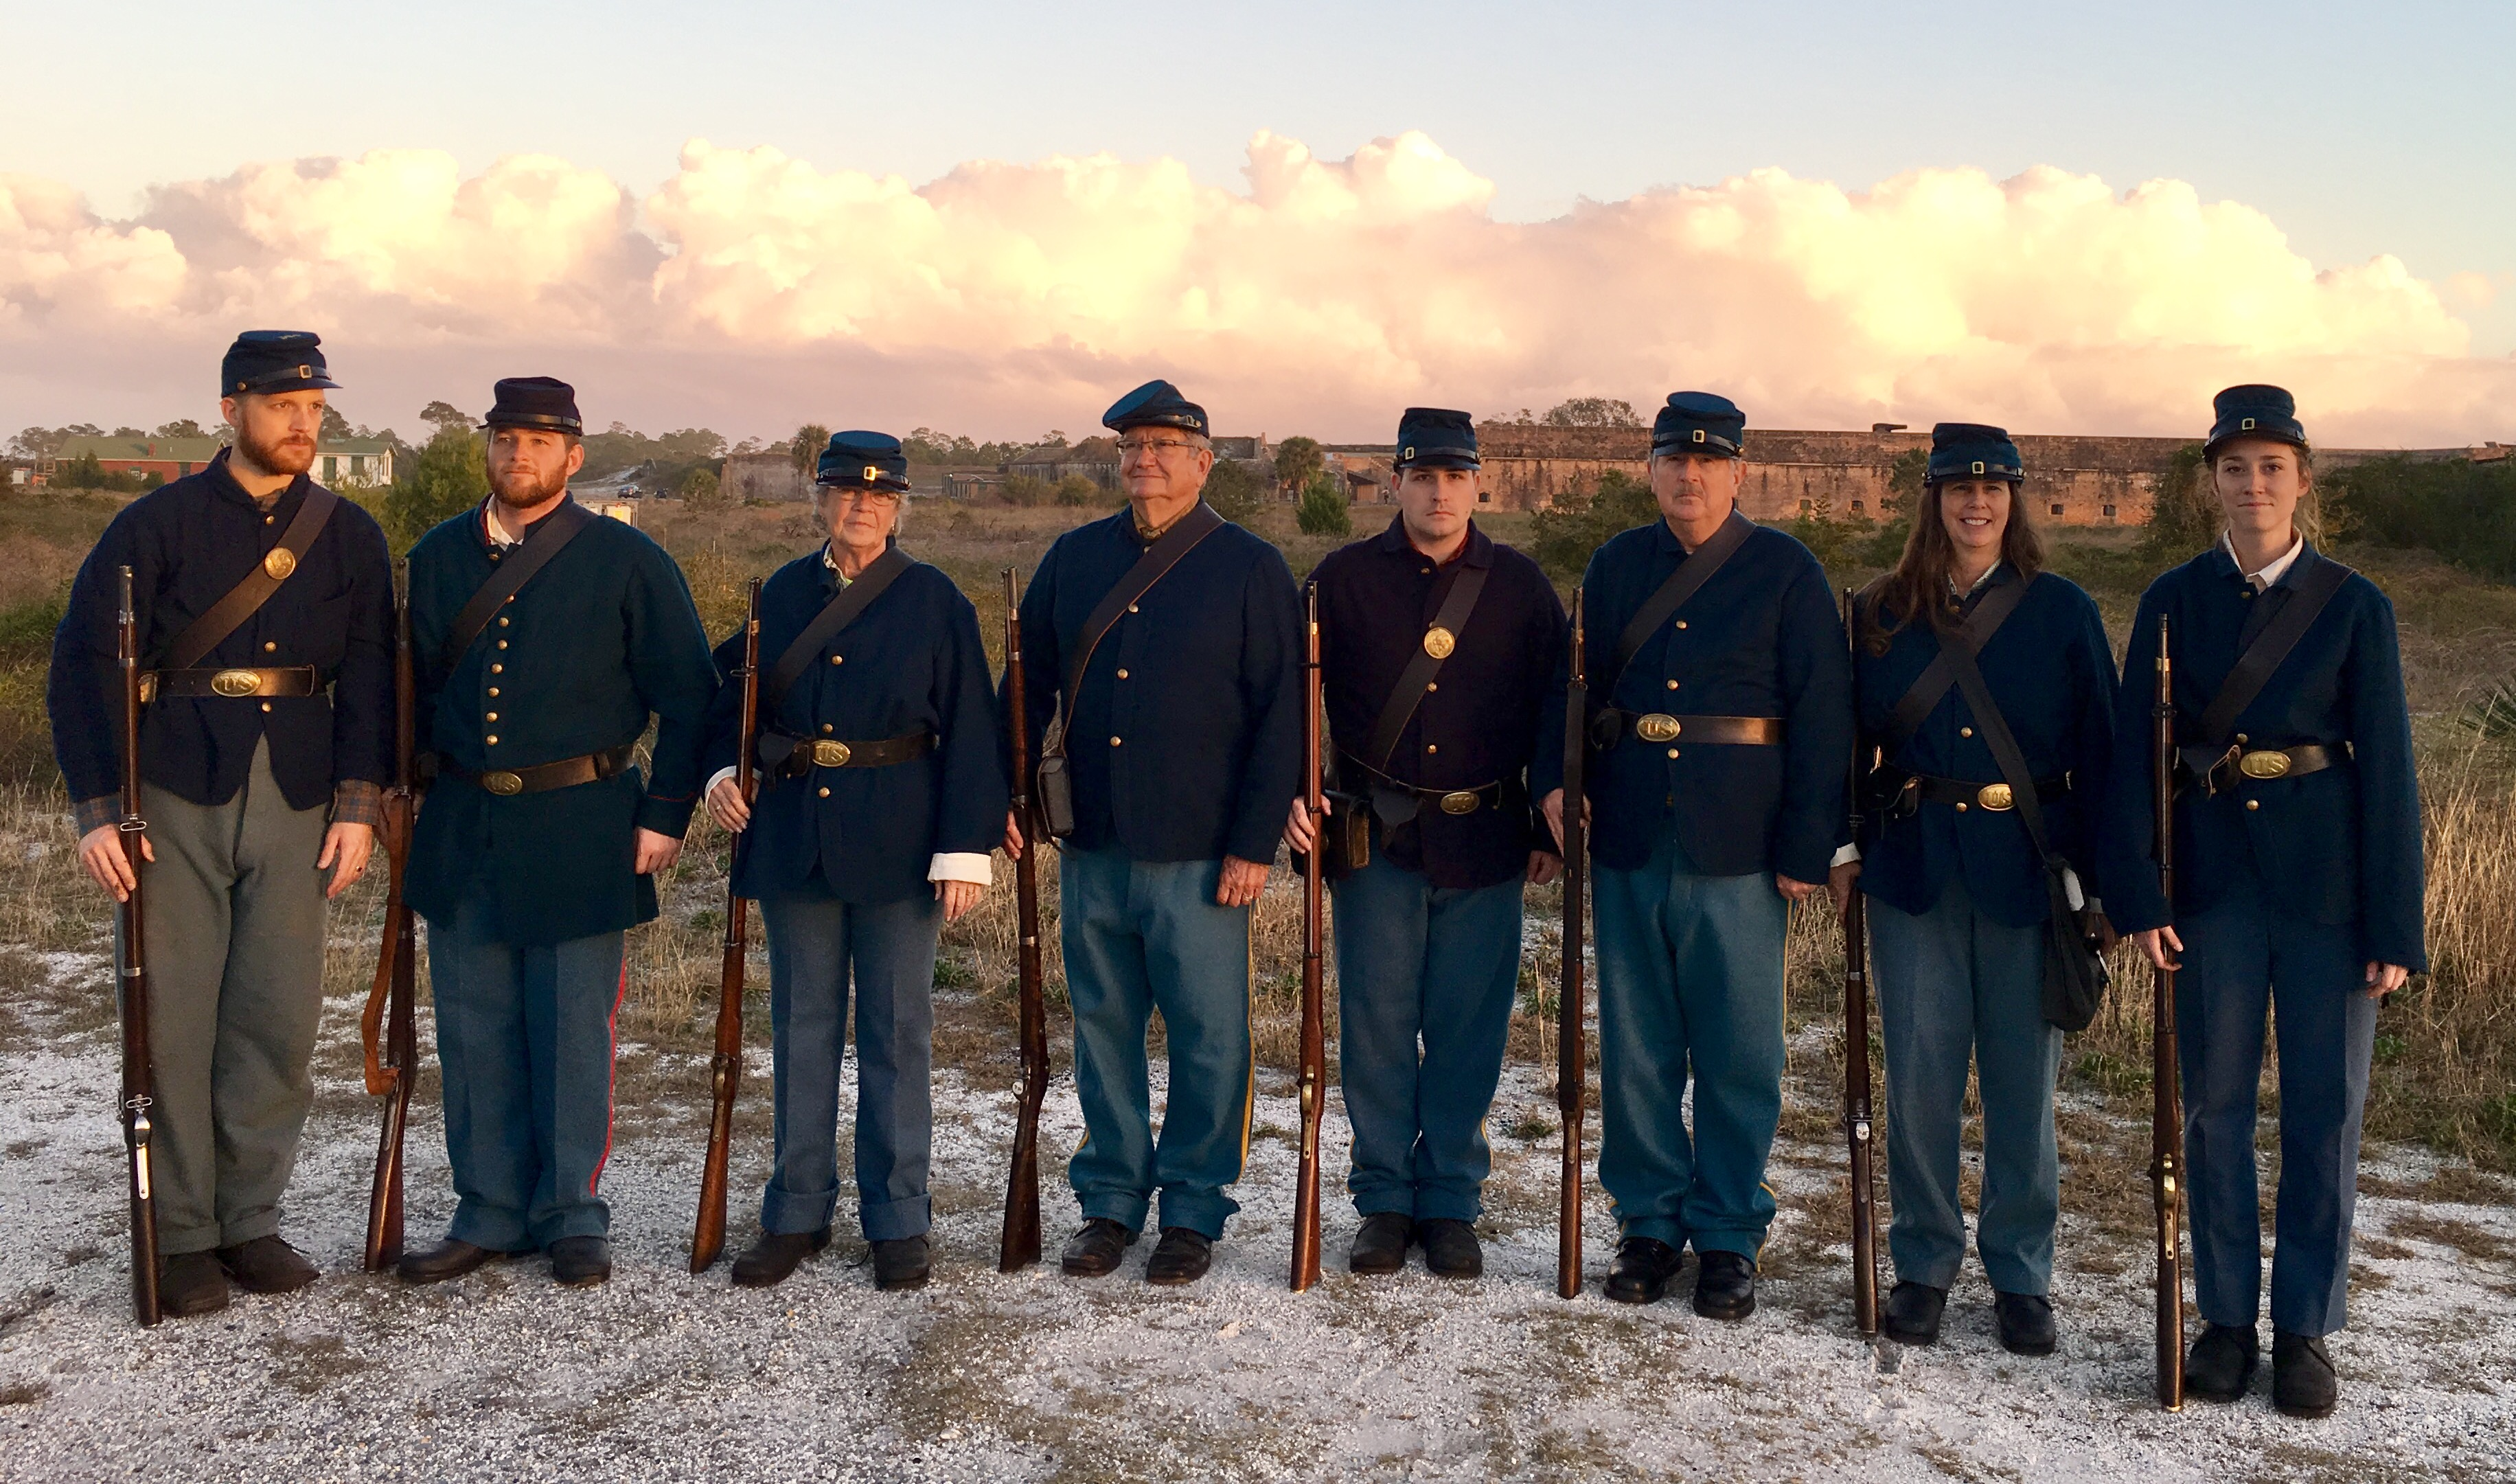 Eight people stand shoulder to shoulder in Civil War era uniforms